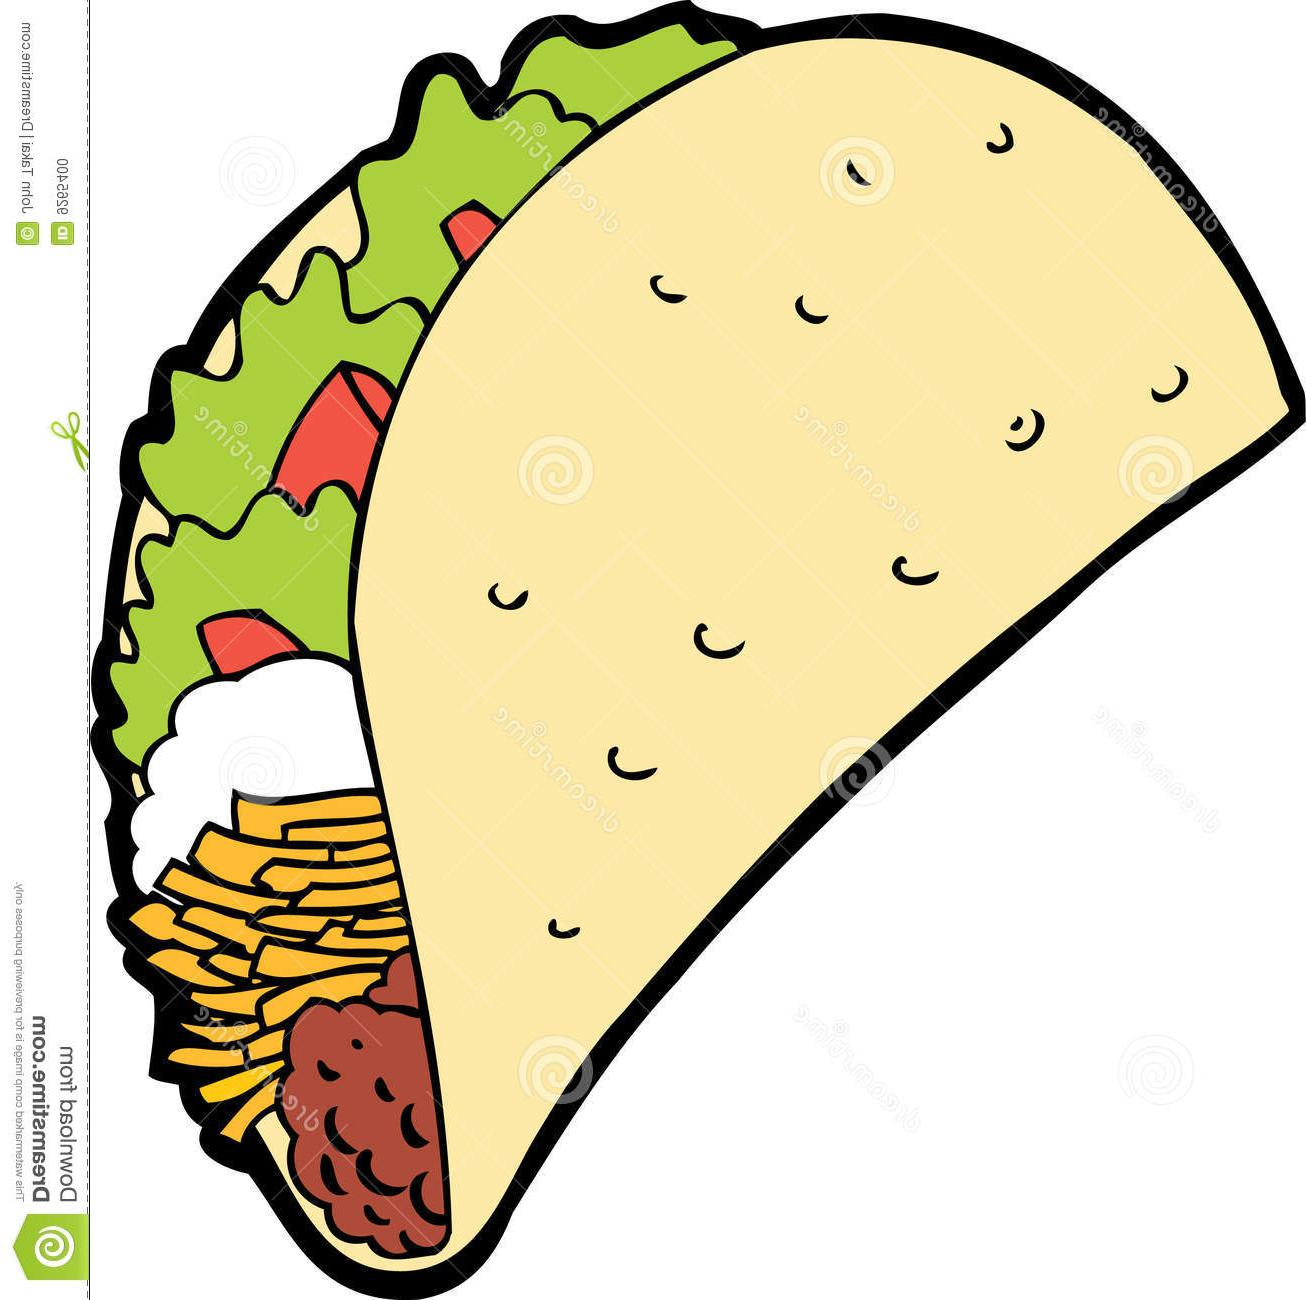 taco drawing at getdrawings com free for personal use taco drawing rh getdrawings com taco clipart vector taco clipart vector